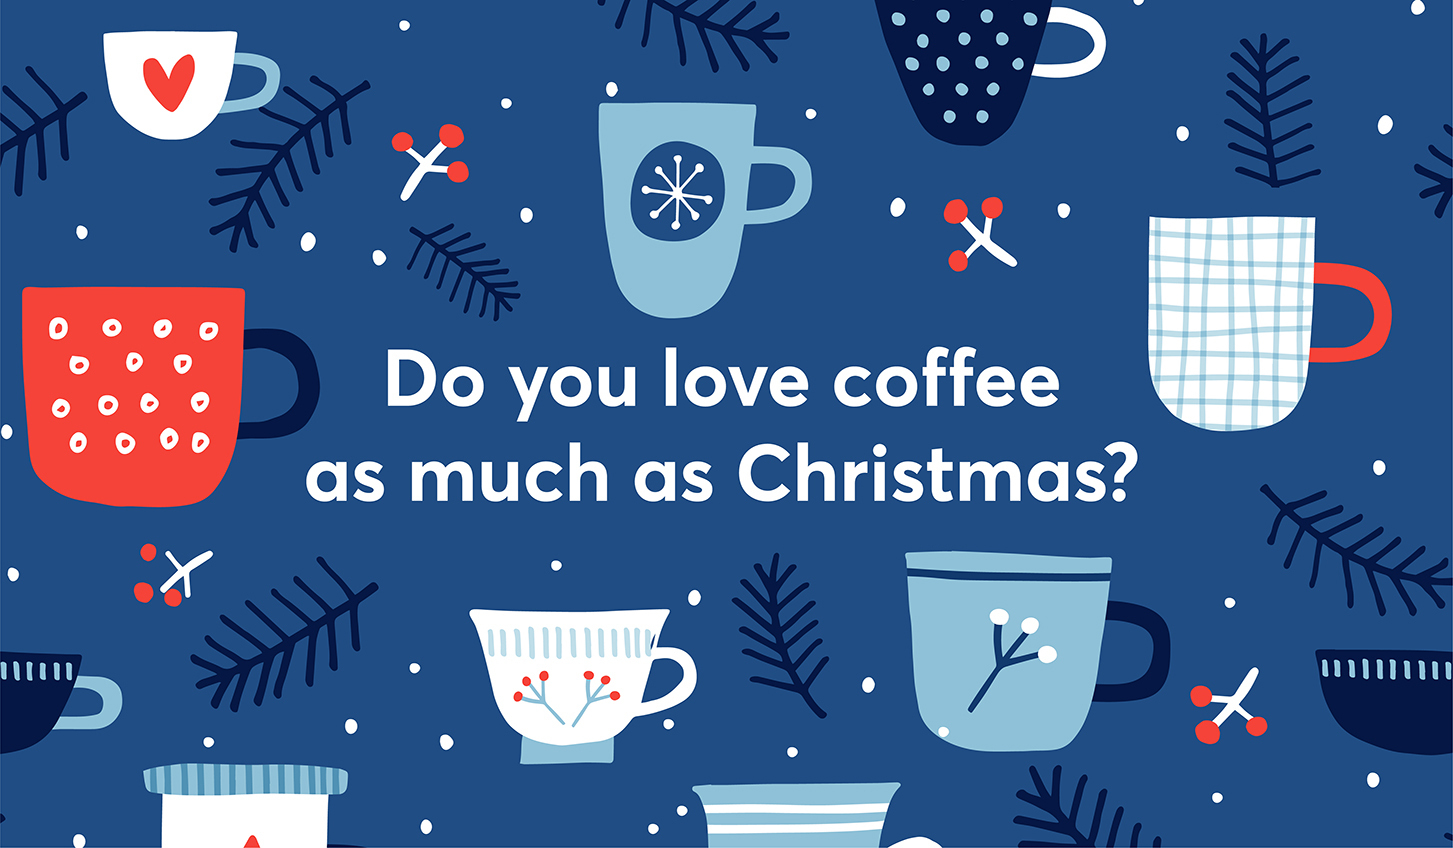 Do you love coffee as much as Christmas